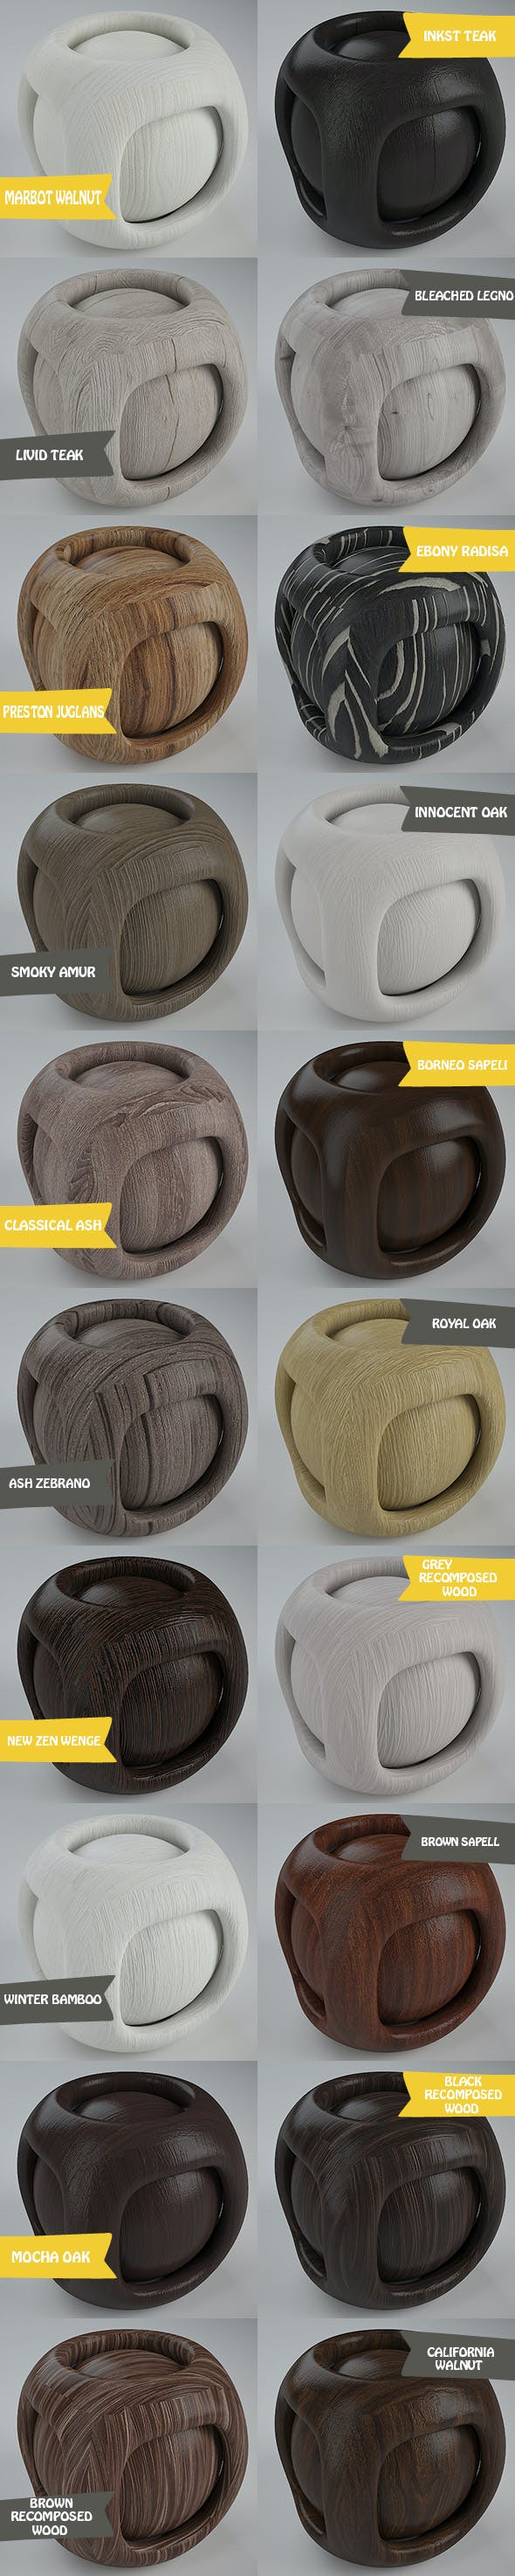 Real Plywood Pack 2 (20 Vray Material) - 3DOcean Item for Sale